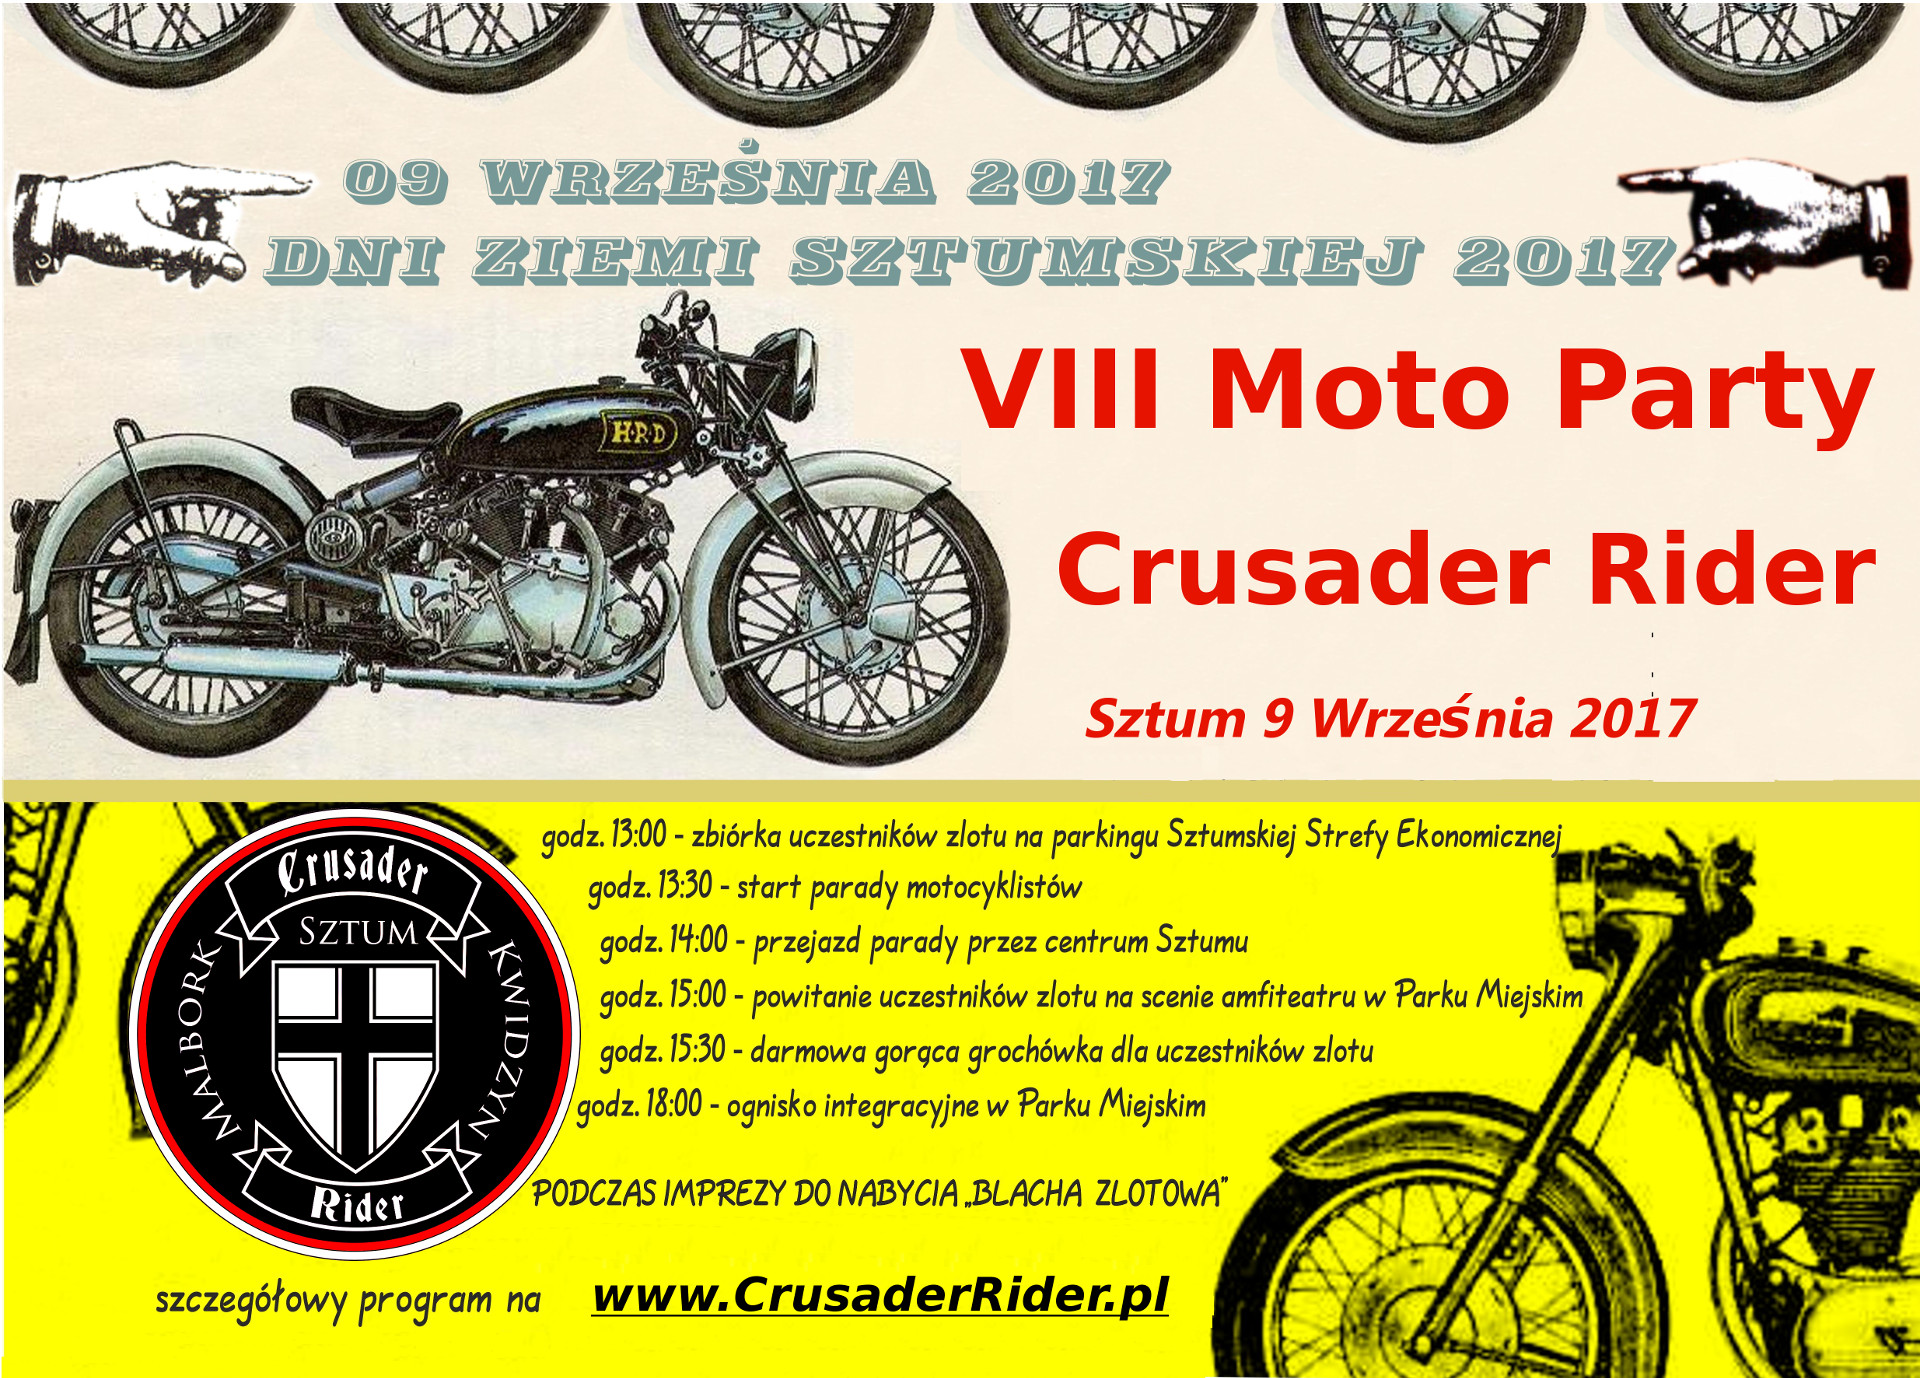 VIII Moto Party Crusader Rider - Sztum 09.09.2017